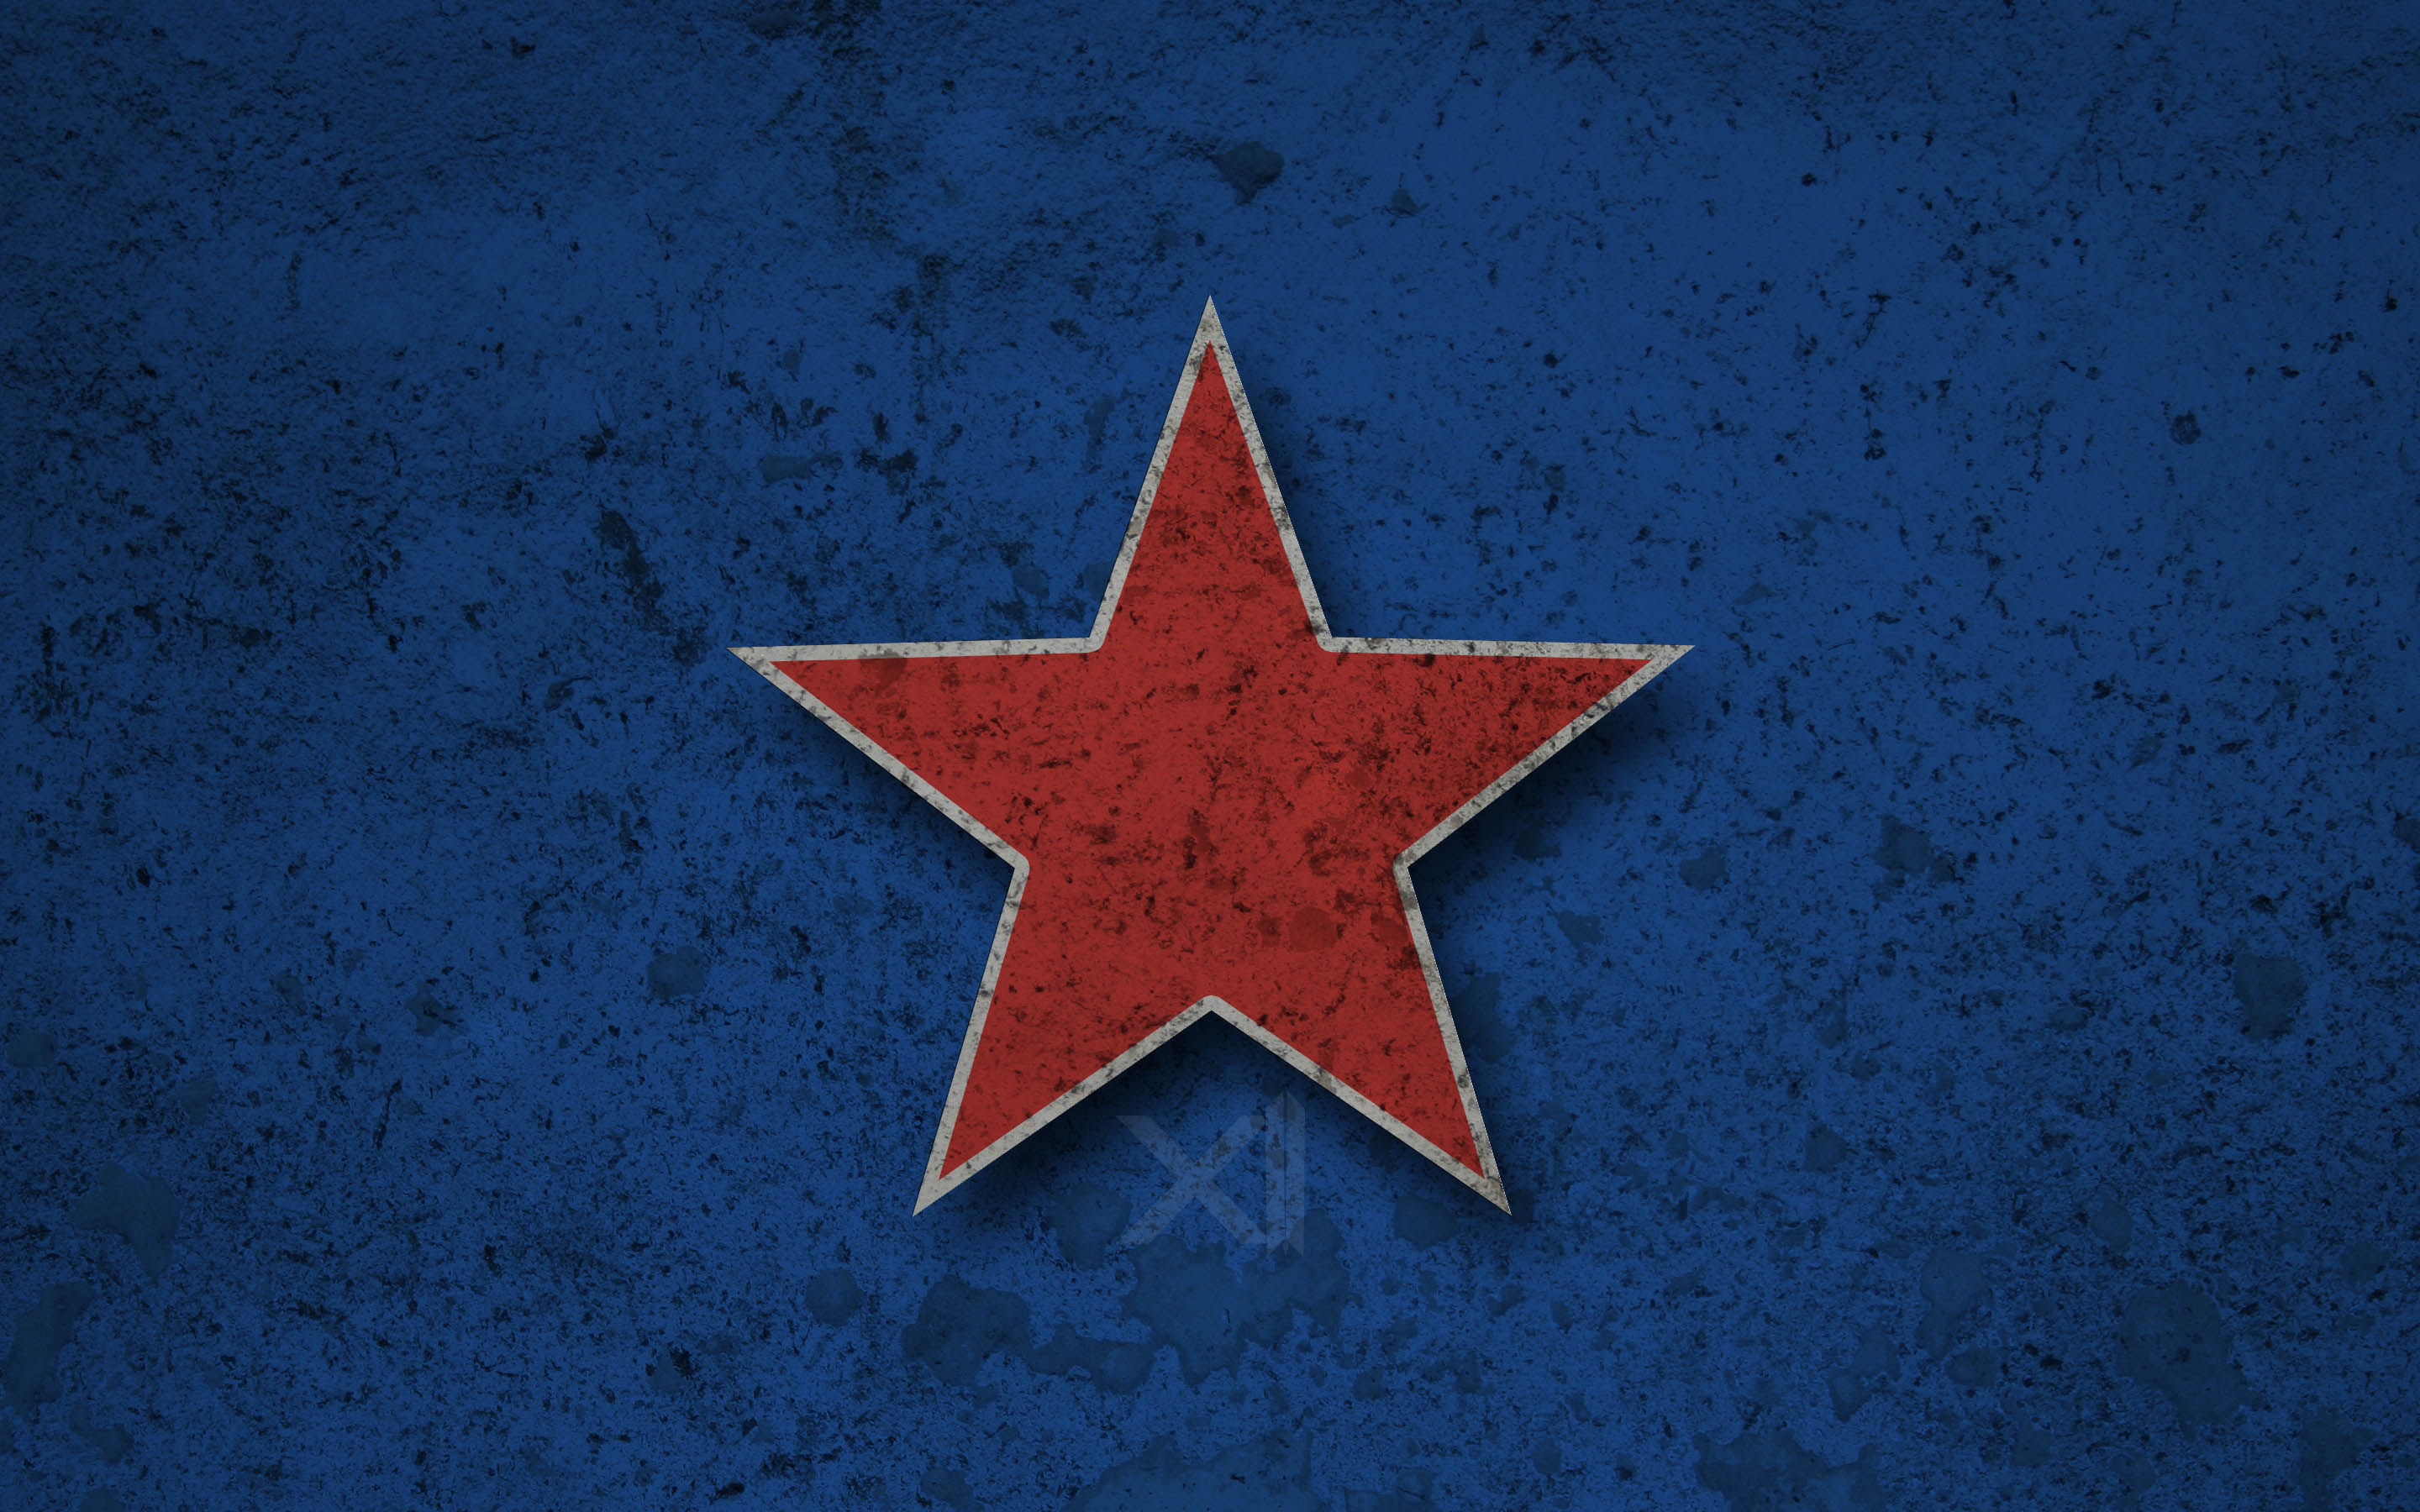 red star wallpaper 3d - photo #6